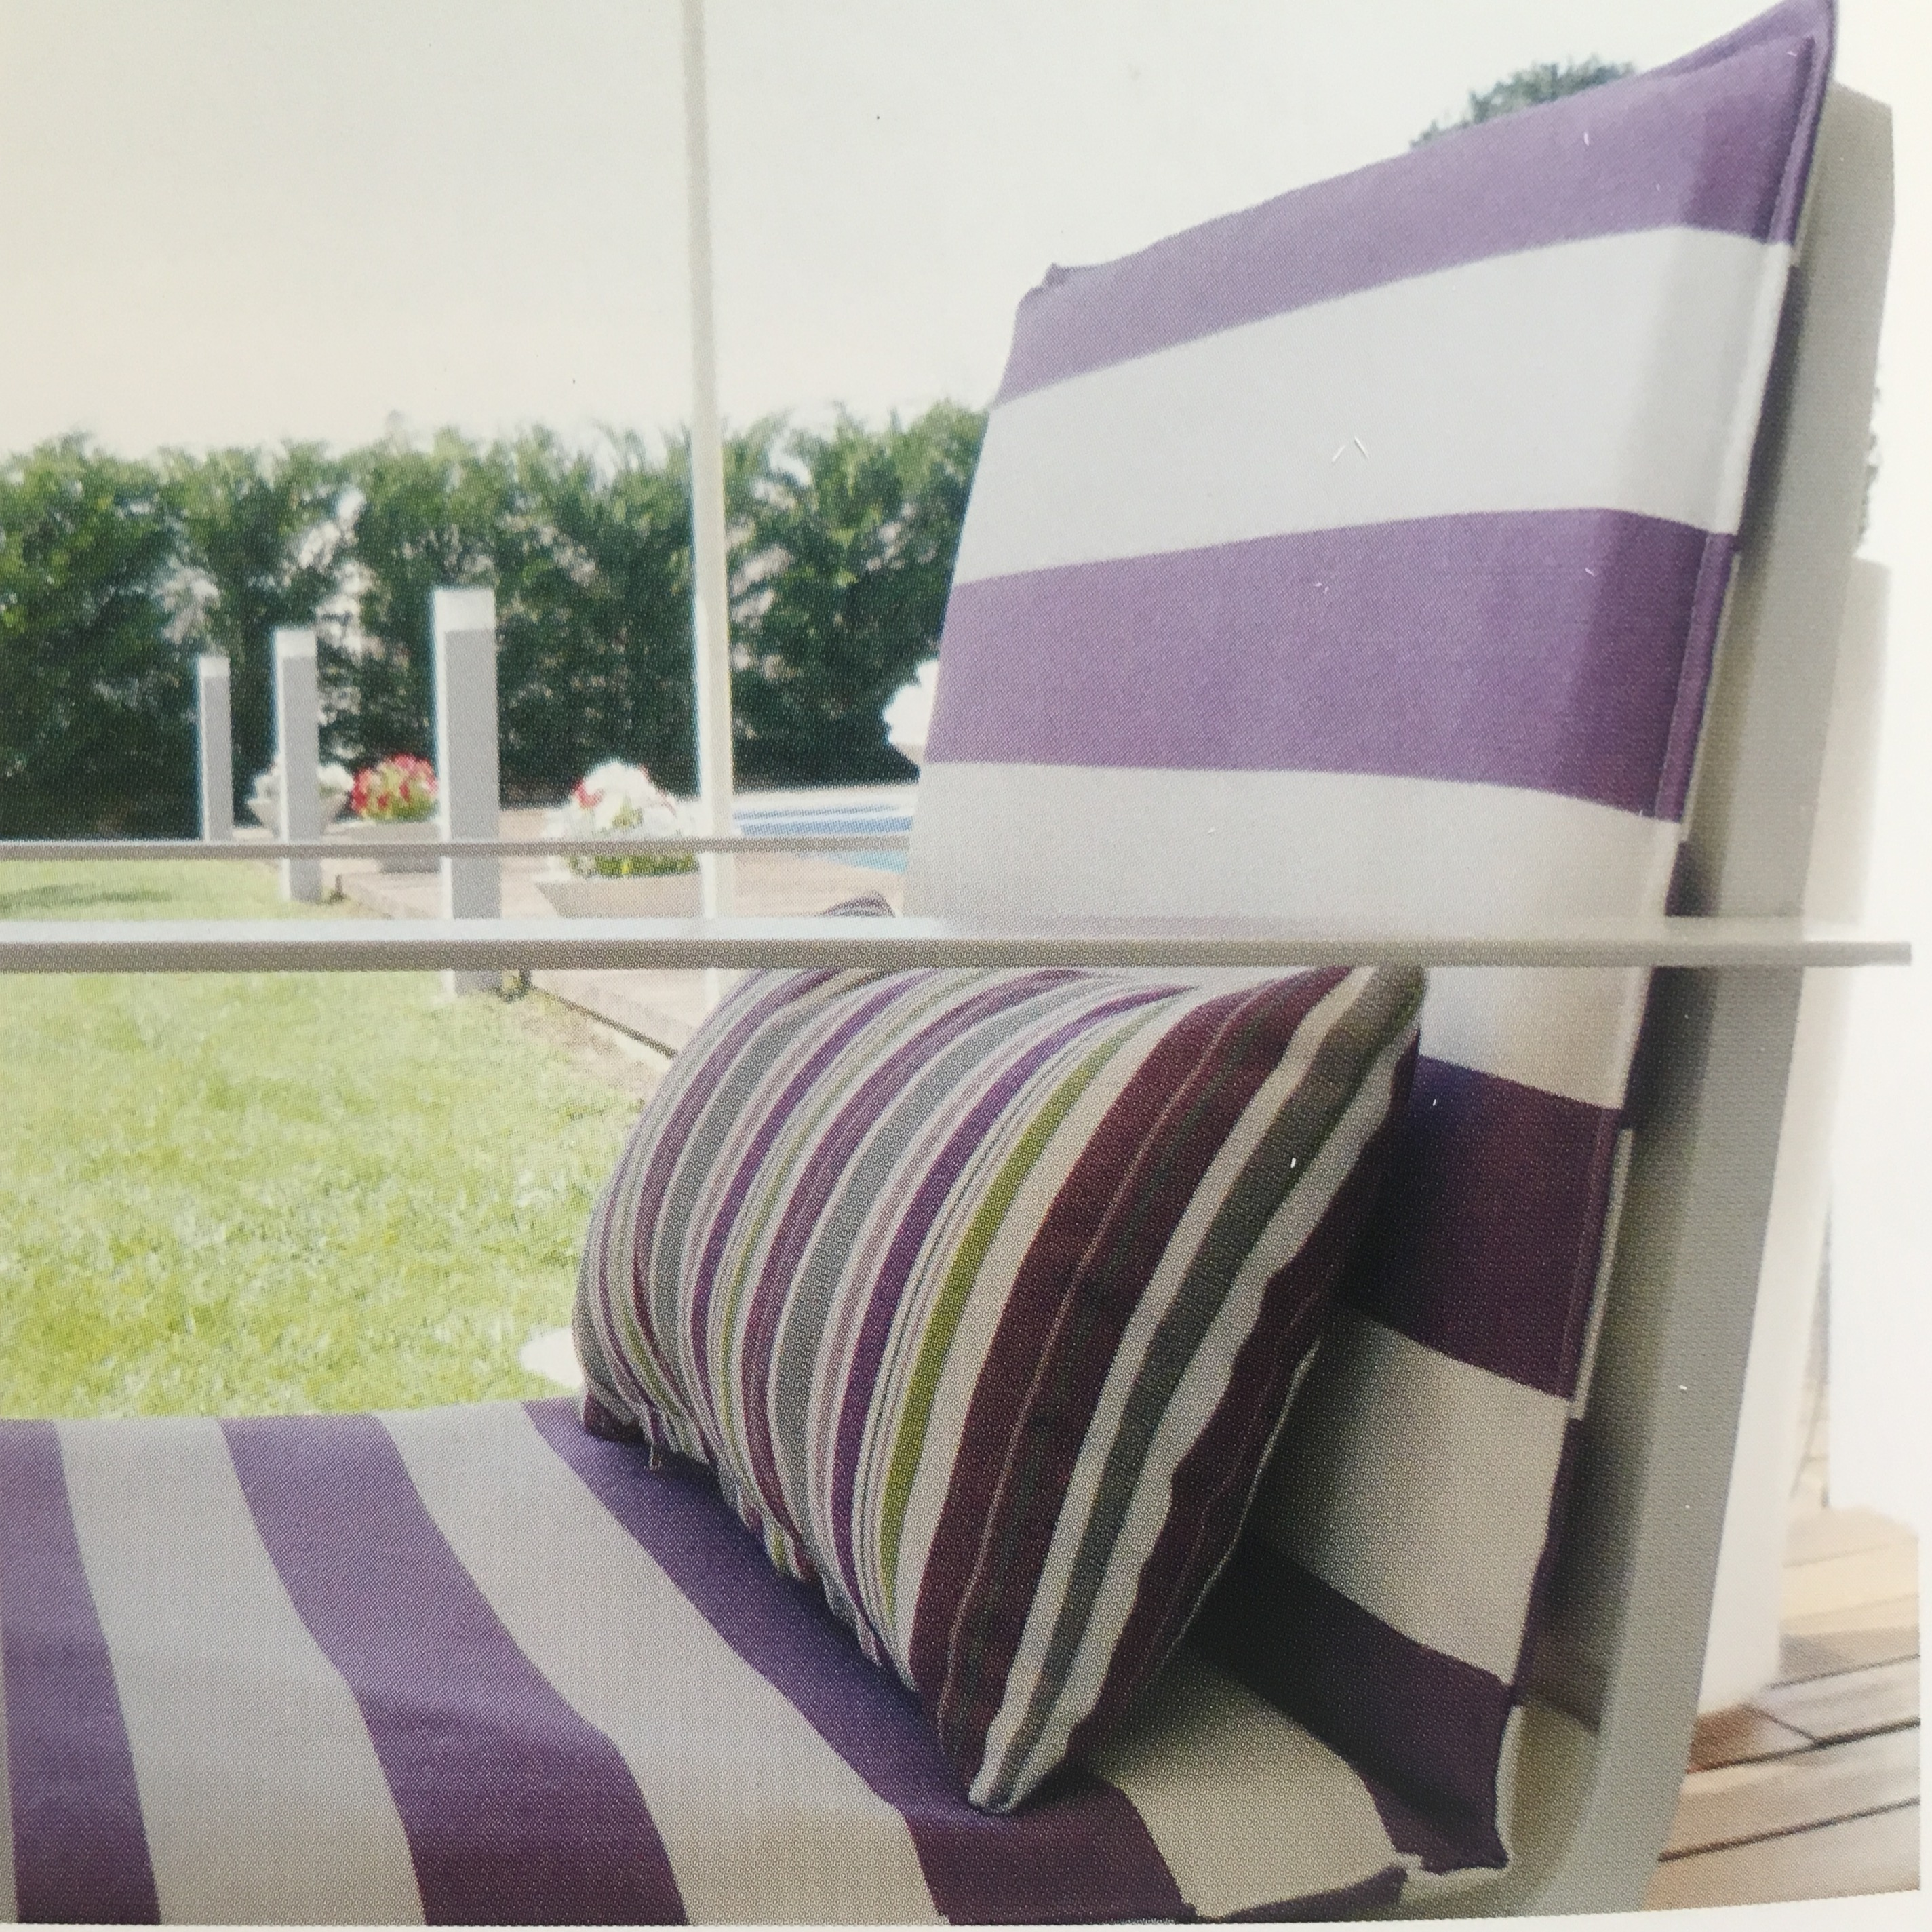 outdoor seat Fabric 100 Solution Dyed Acrylic Plain Waterproof Beach Gsm Style  patterned  Tent Feature Weight Material Yarn